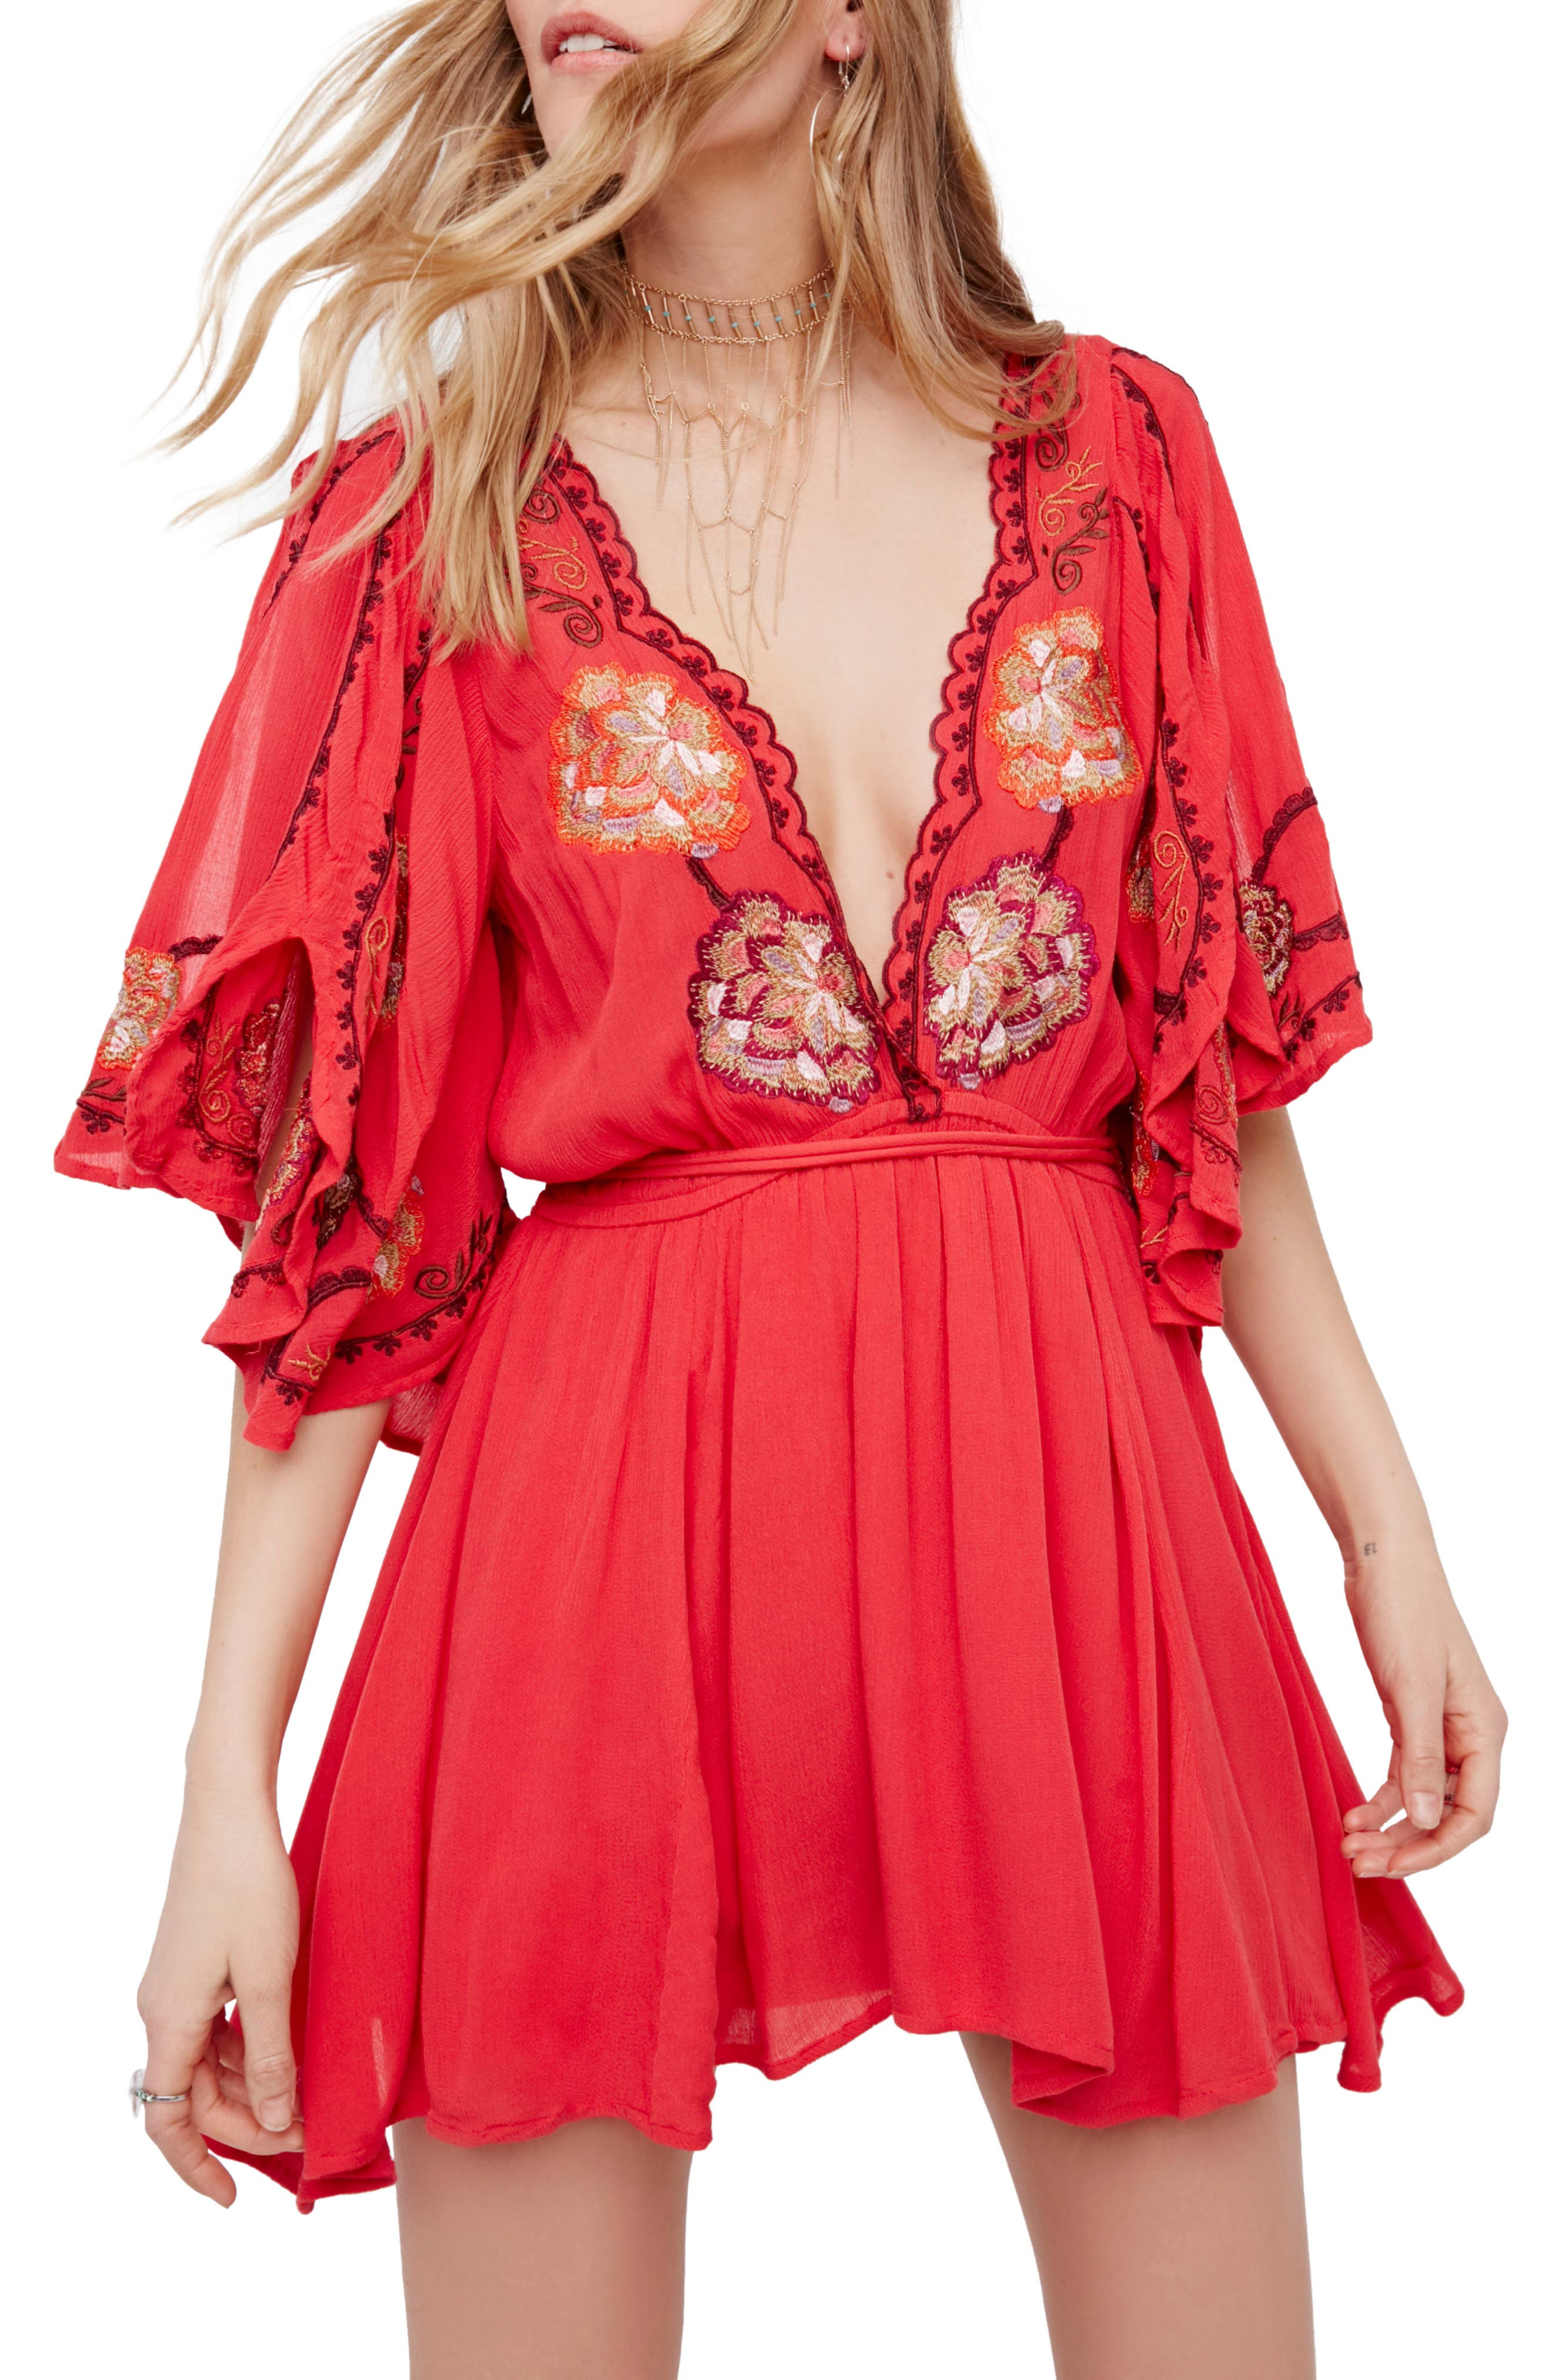 Alternate Image 1 Selected - Free People Cora Embroidered Minidress